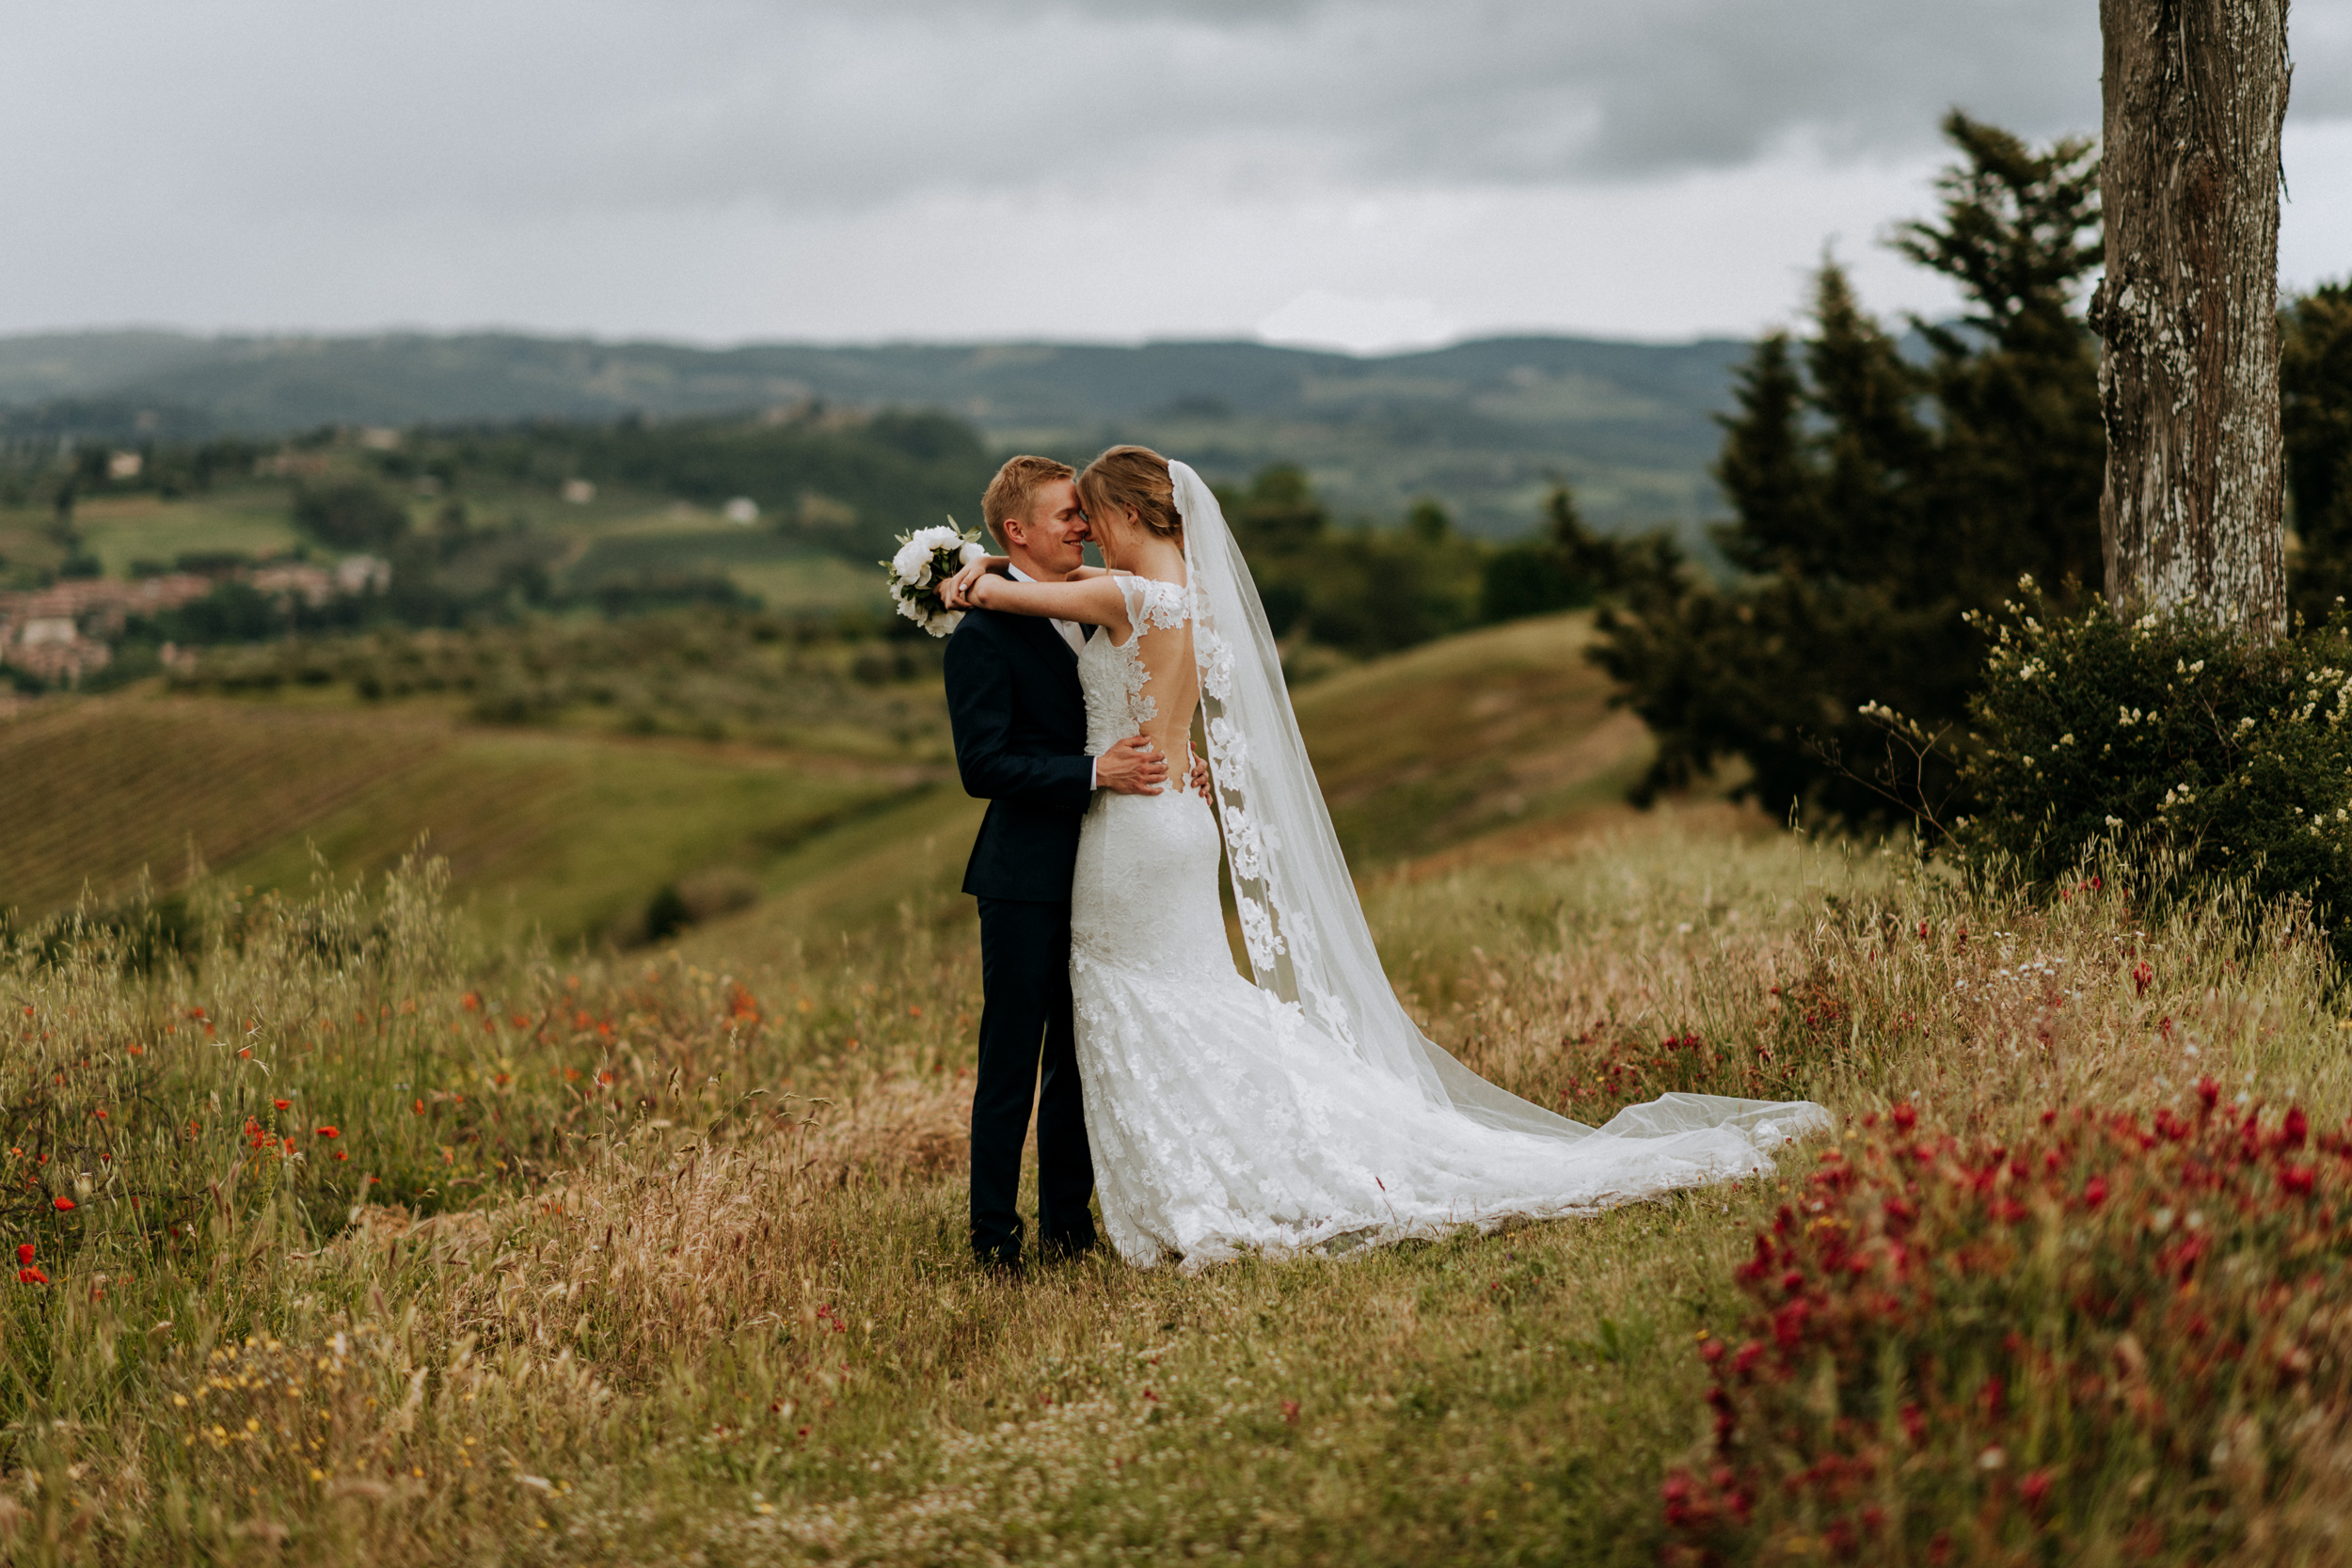 Wedding Photographer in Tuscany Italy